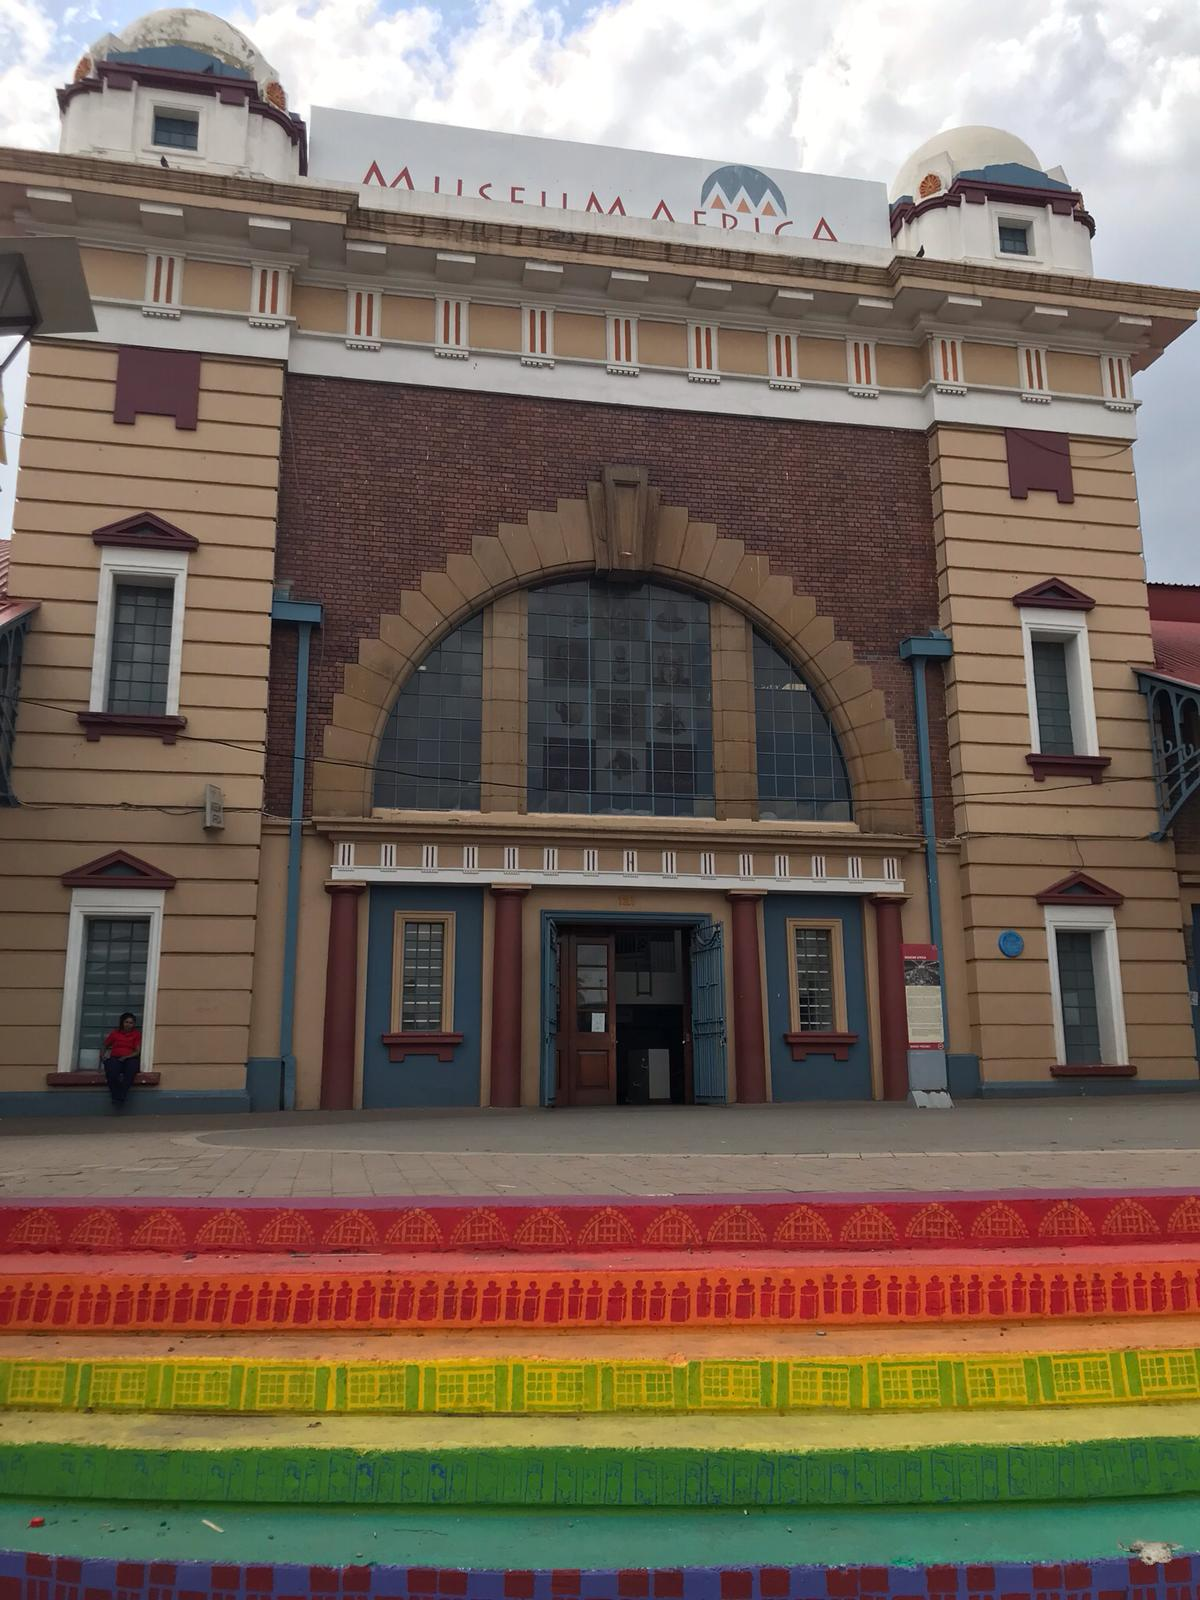 Entrance of the Museum Africa. Johannesburg Itinerary